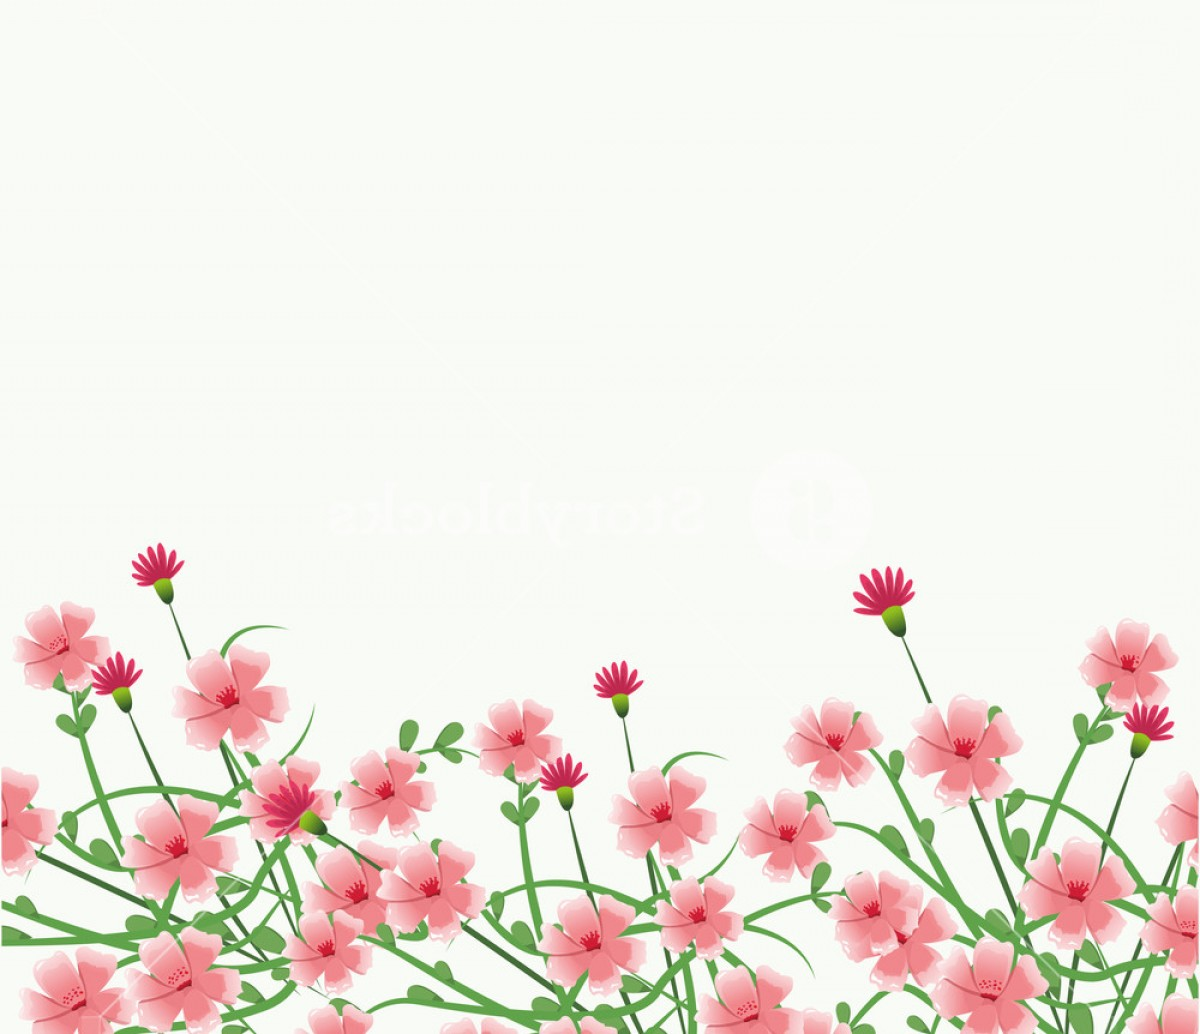 Beautiful Flowers Vector Graphic: Beautiful Flowers Frame Over White Background Vector Illustration Graphic Design Bmpwcmxrbxjikhdv